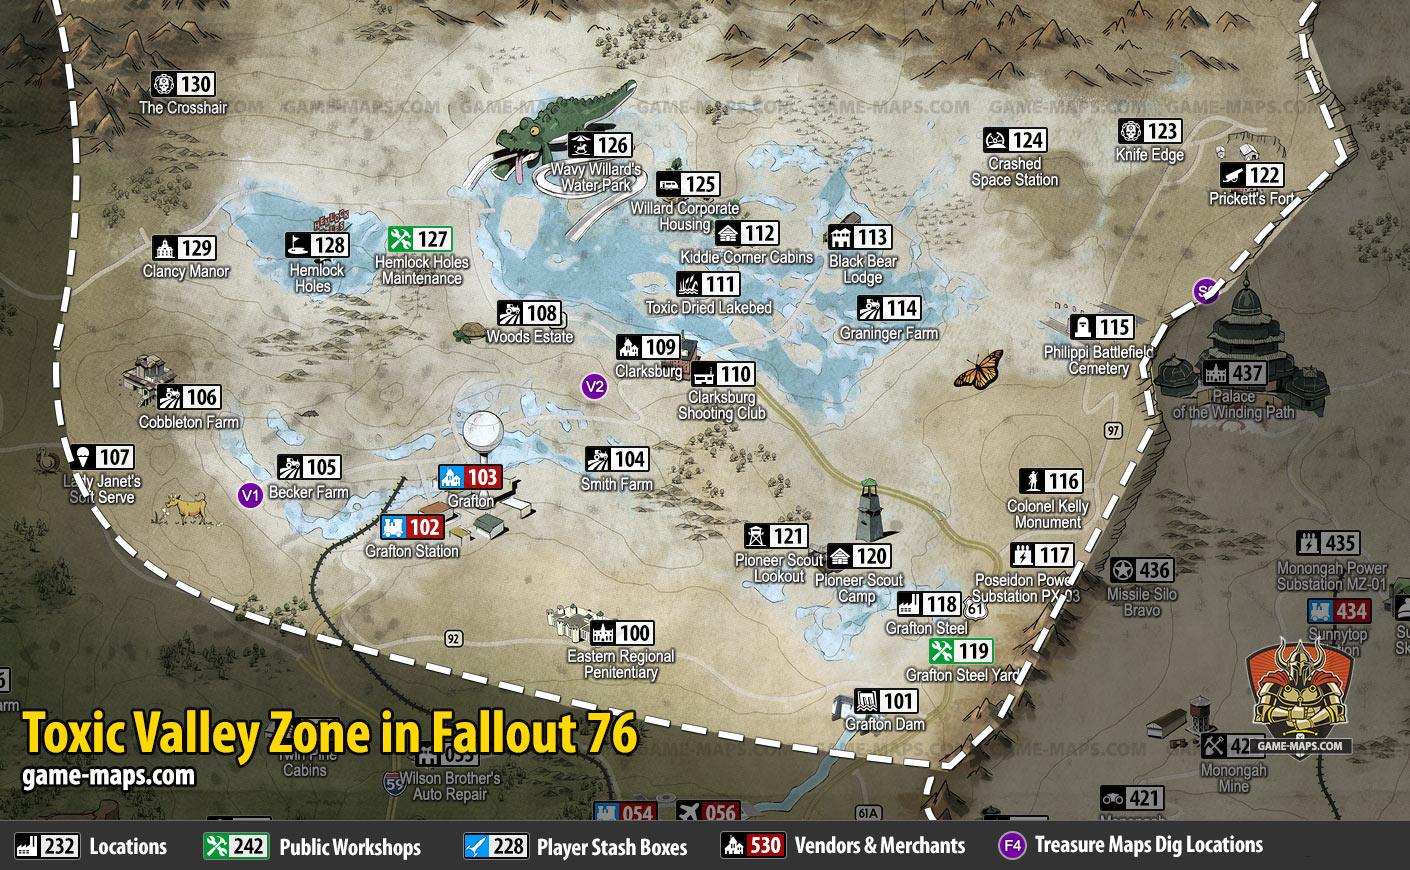 Toxic Valley Map for Fallout 76 | game-maps com